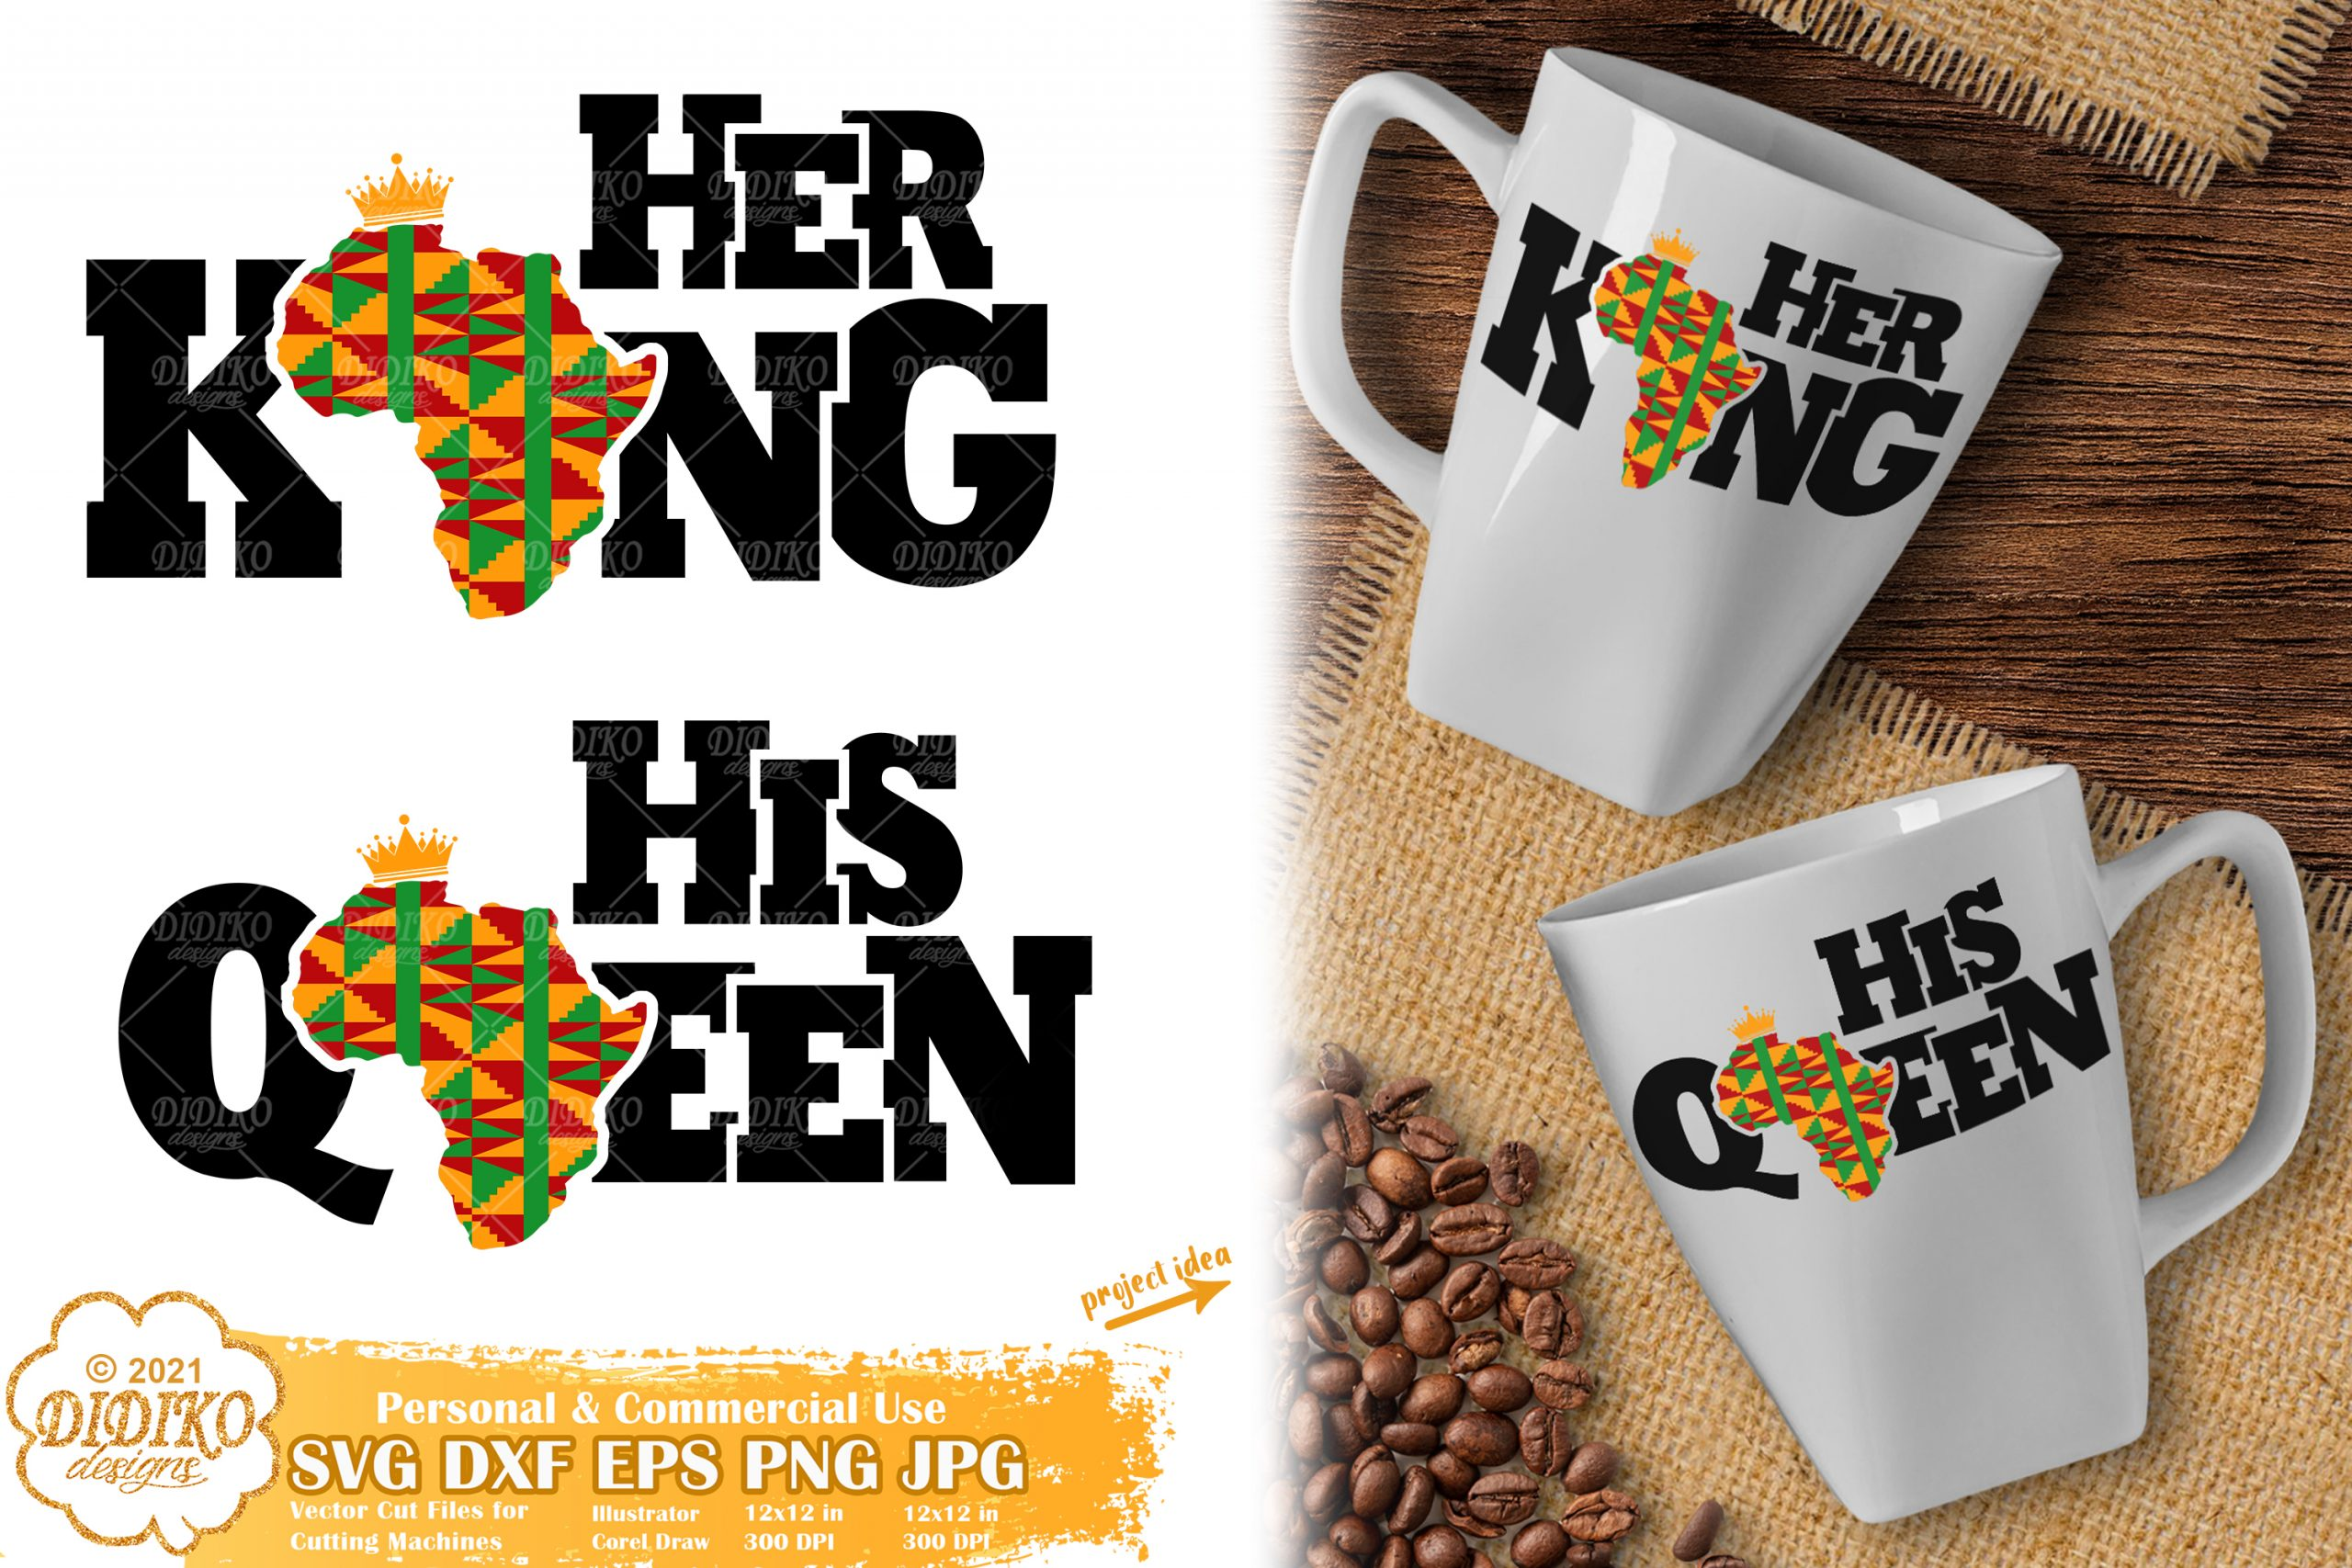 Her King His Queen SVG